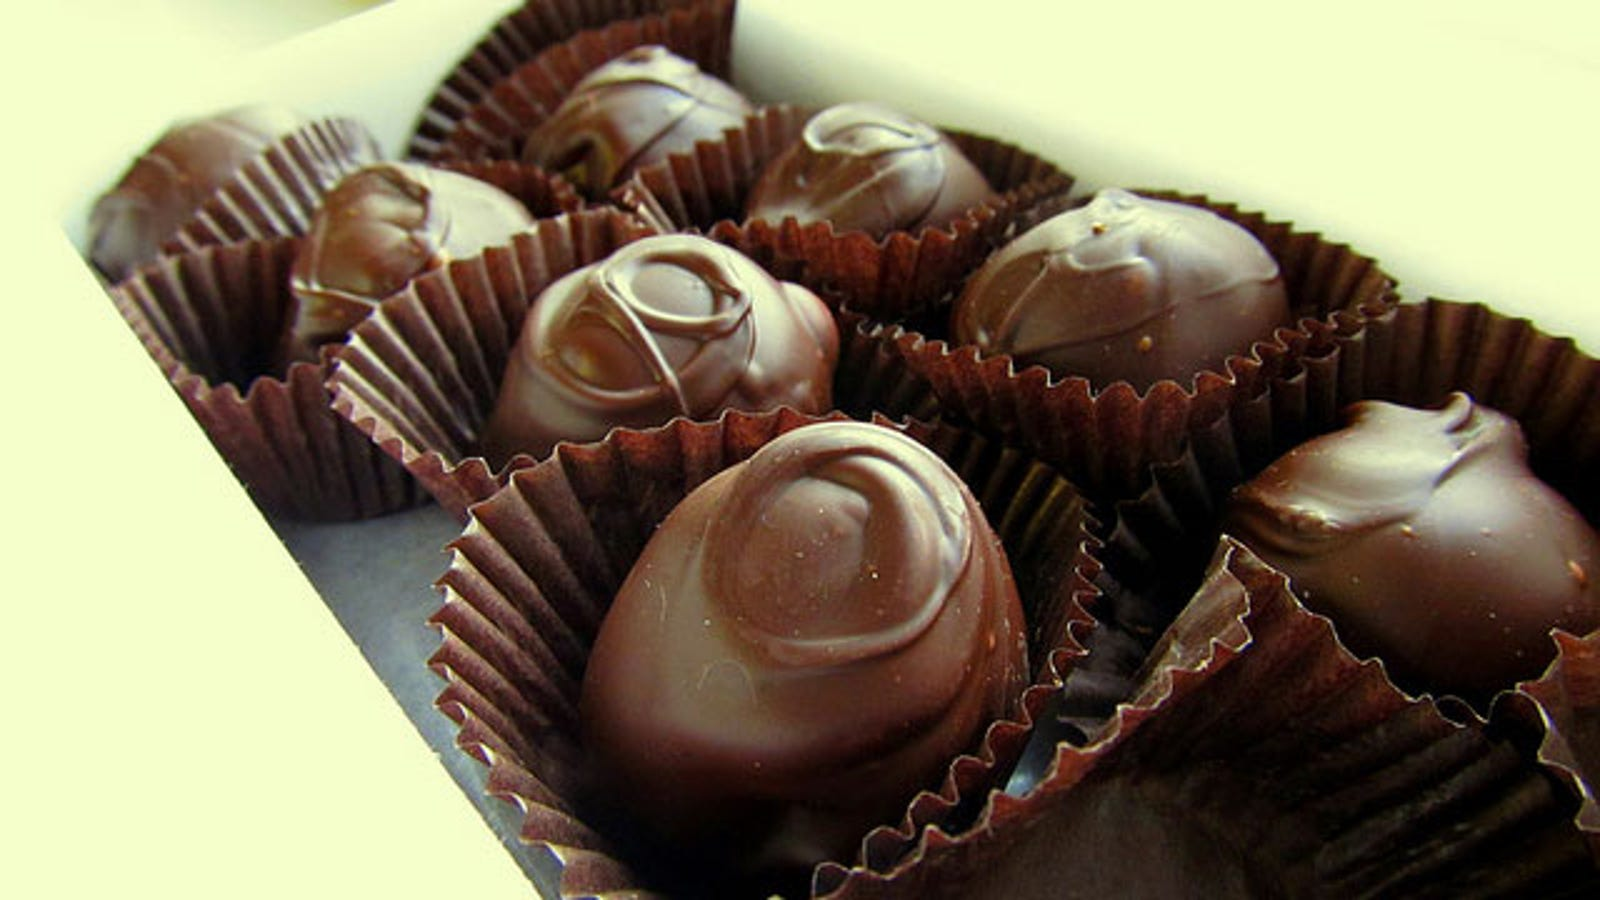 Make Fancy Chocolate Truffles With Just Two Ingredients